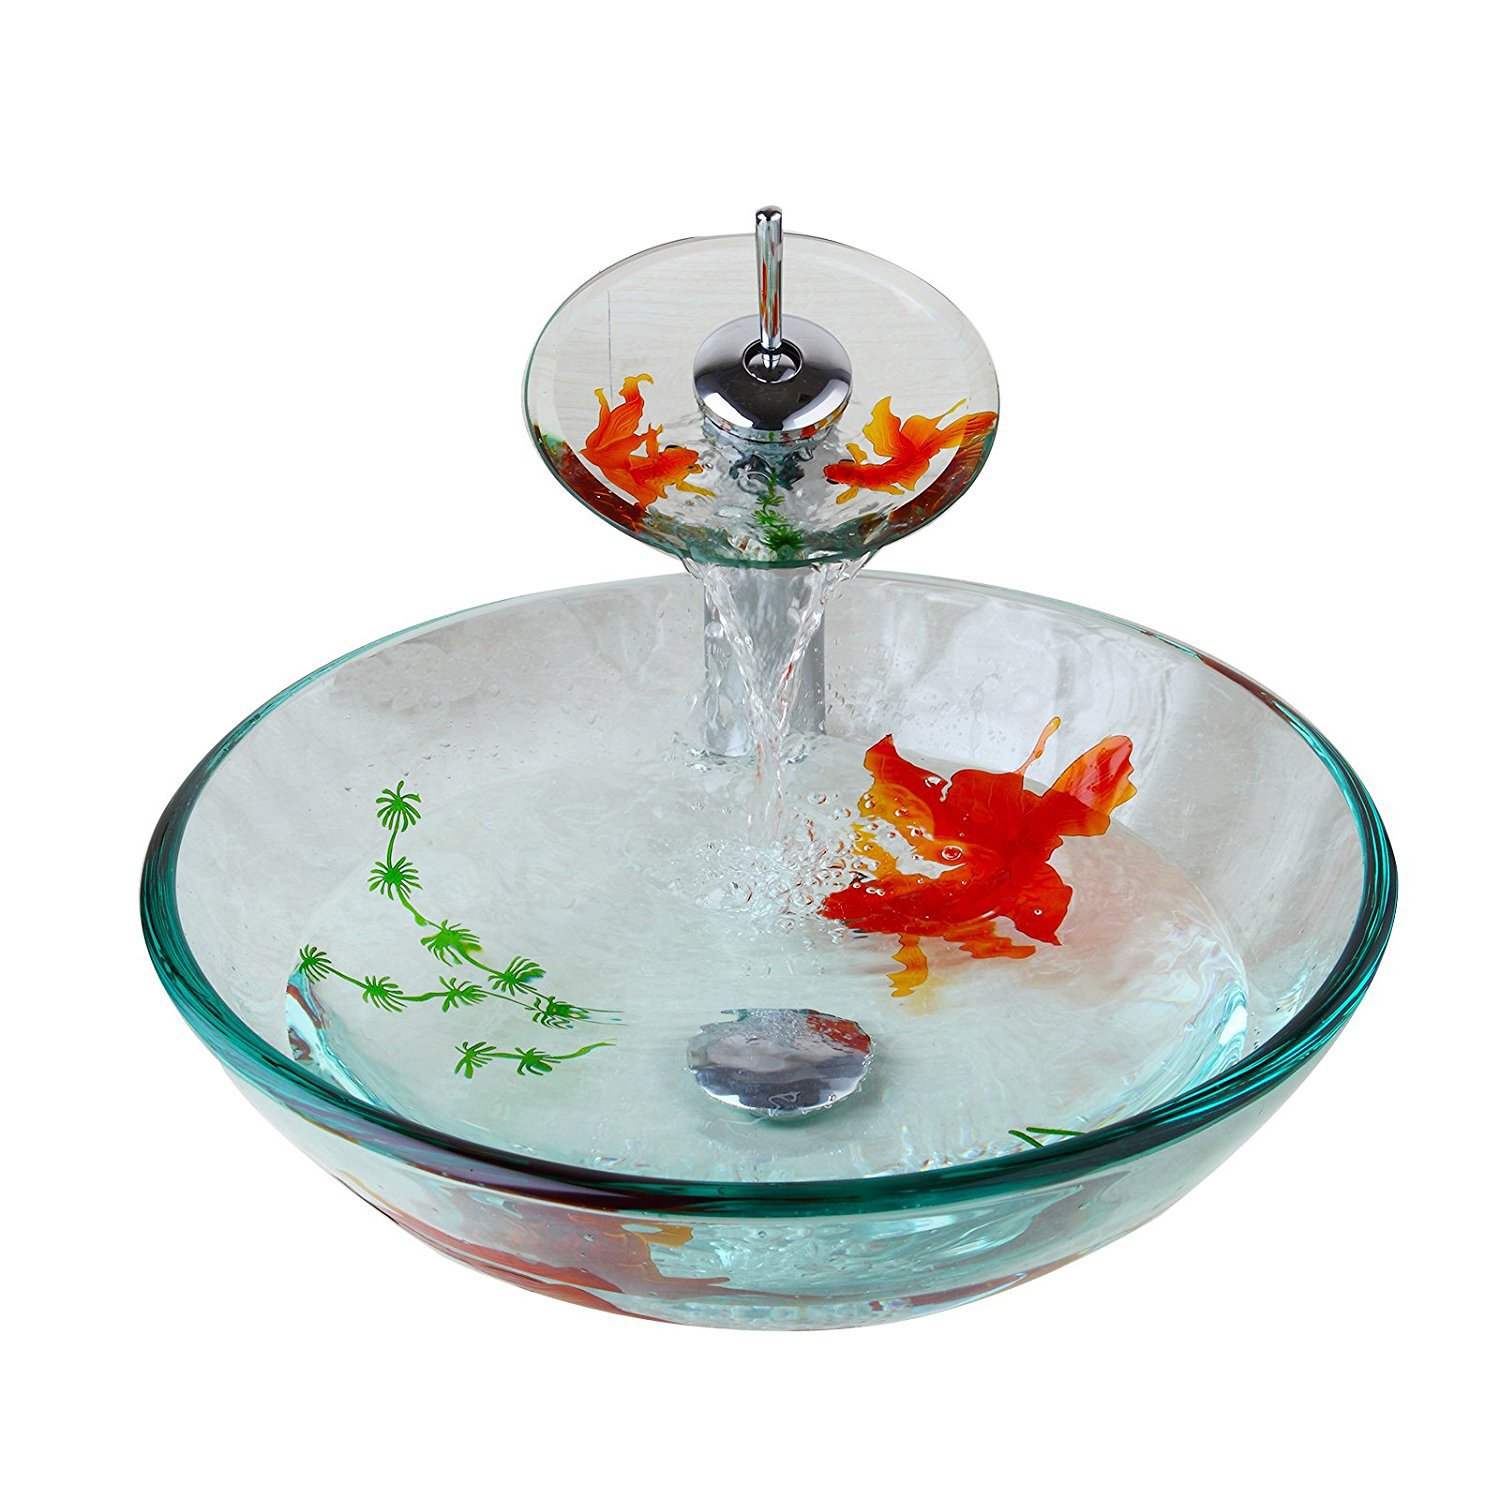 Bathroom Vessel Sinks With Waterfall Faucet Combo Goldfish And Grass